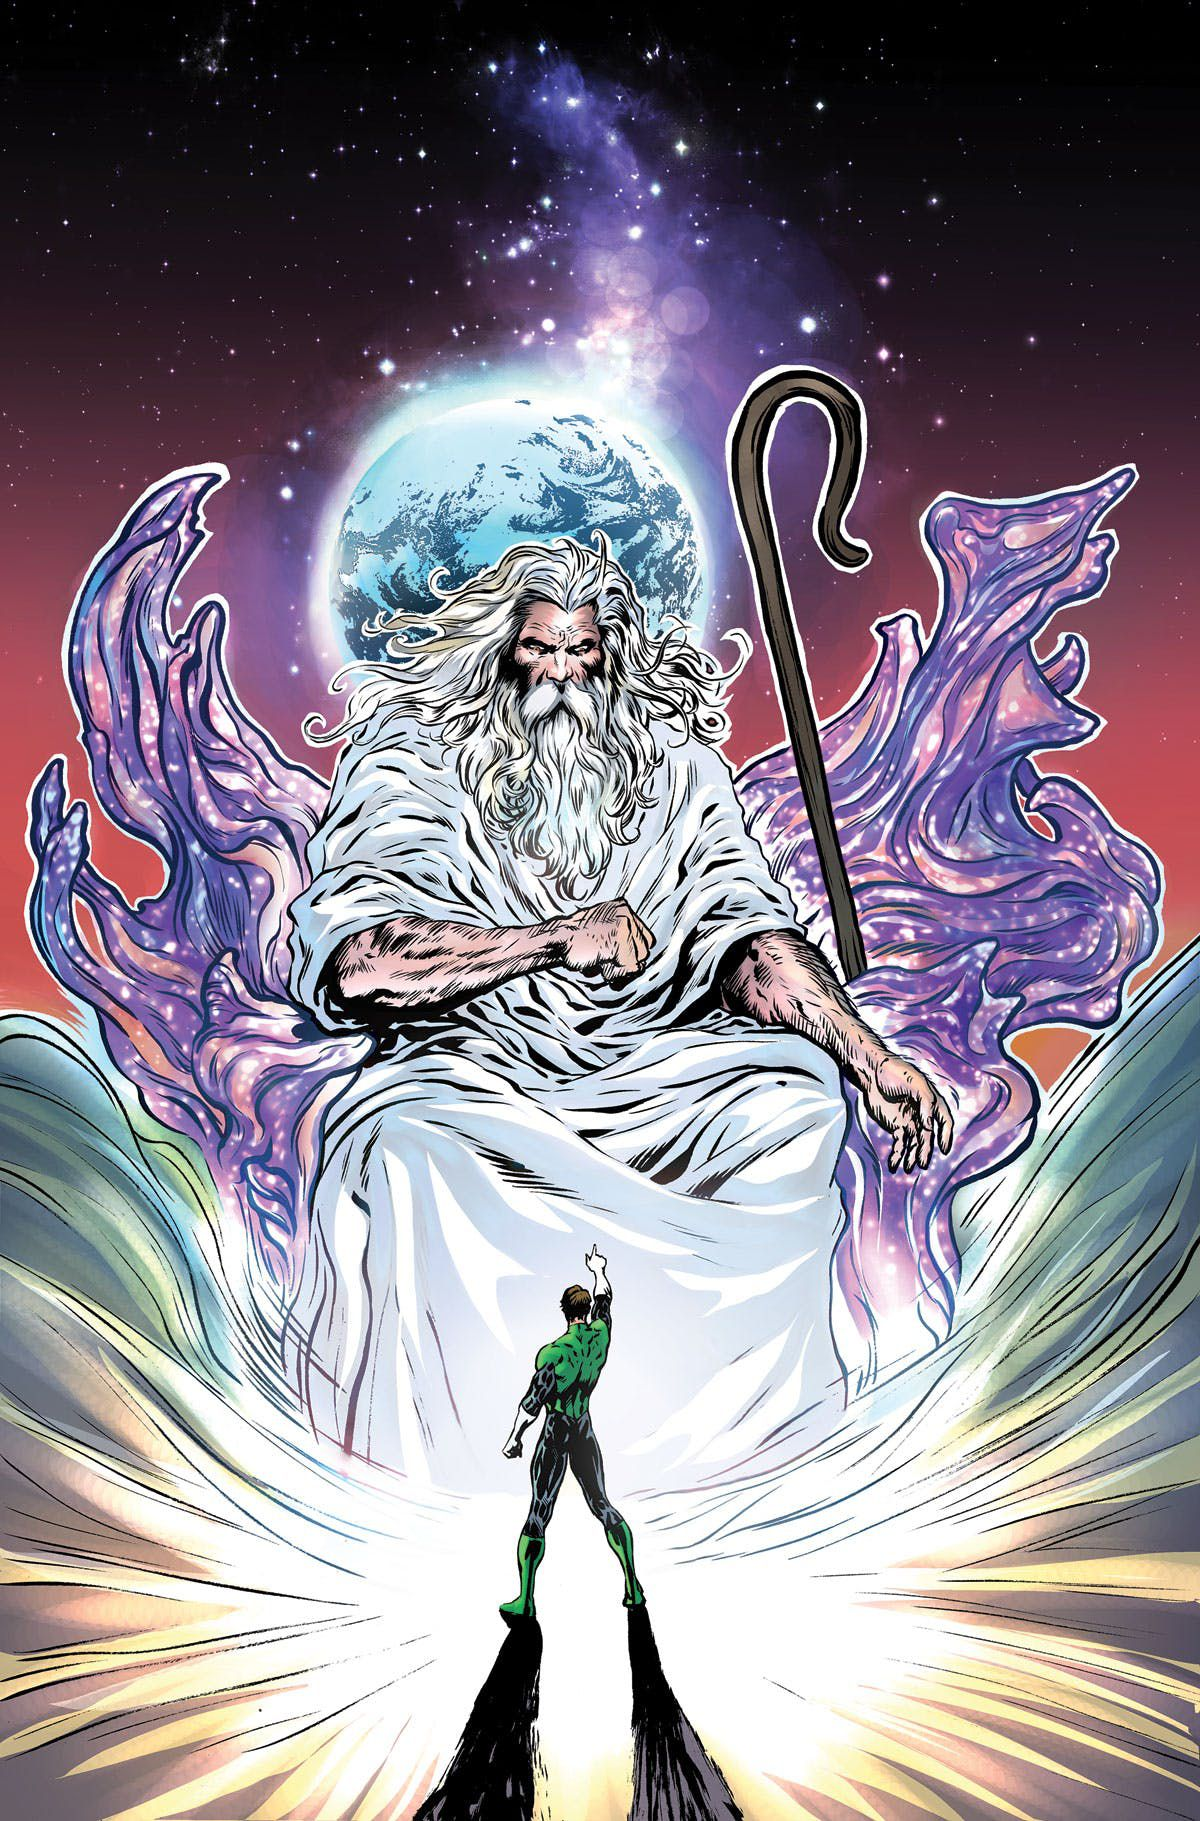 The cover of The Green Lantern #3, DC Comics (2019).